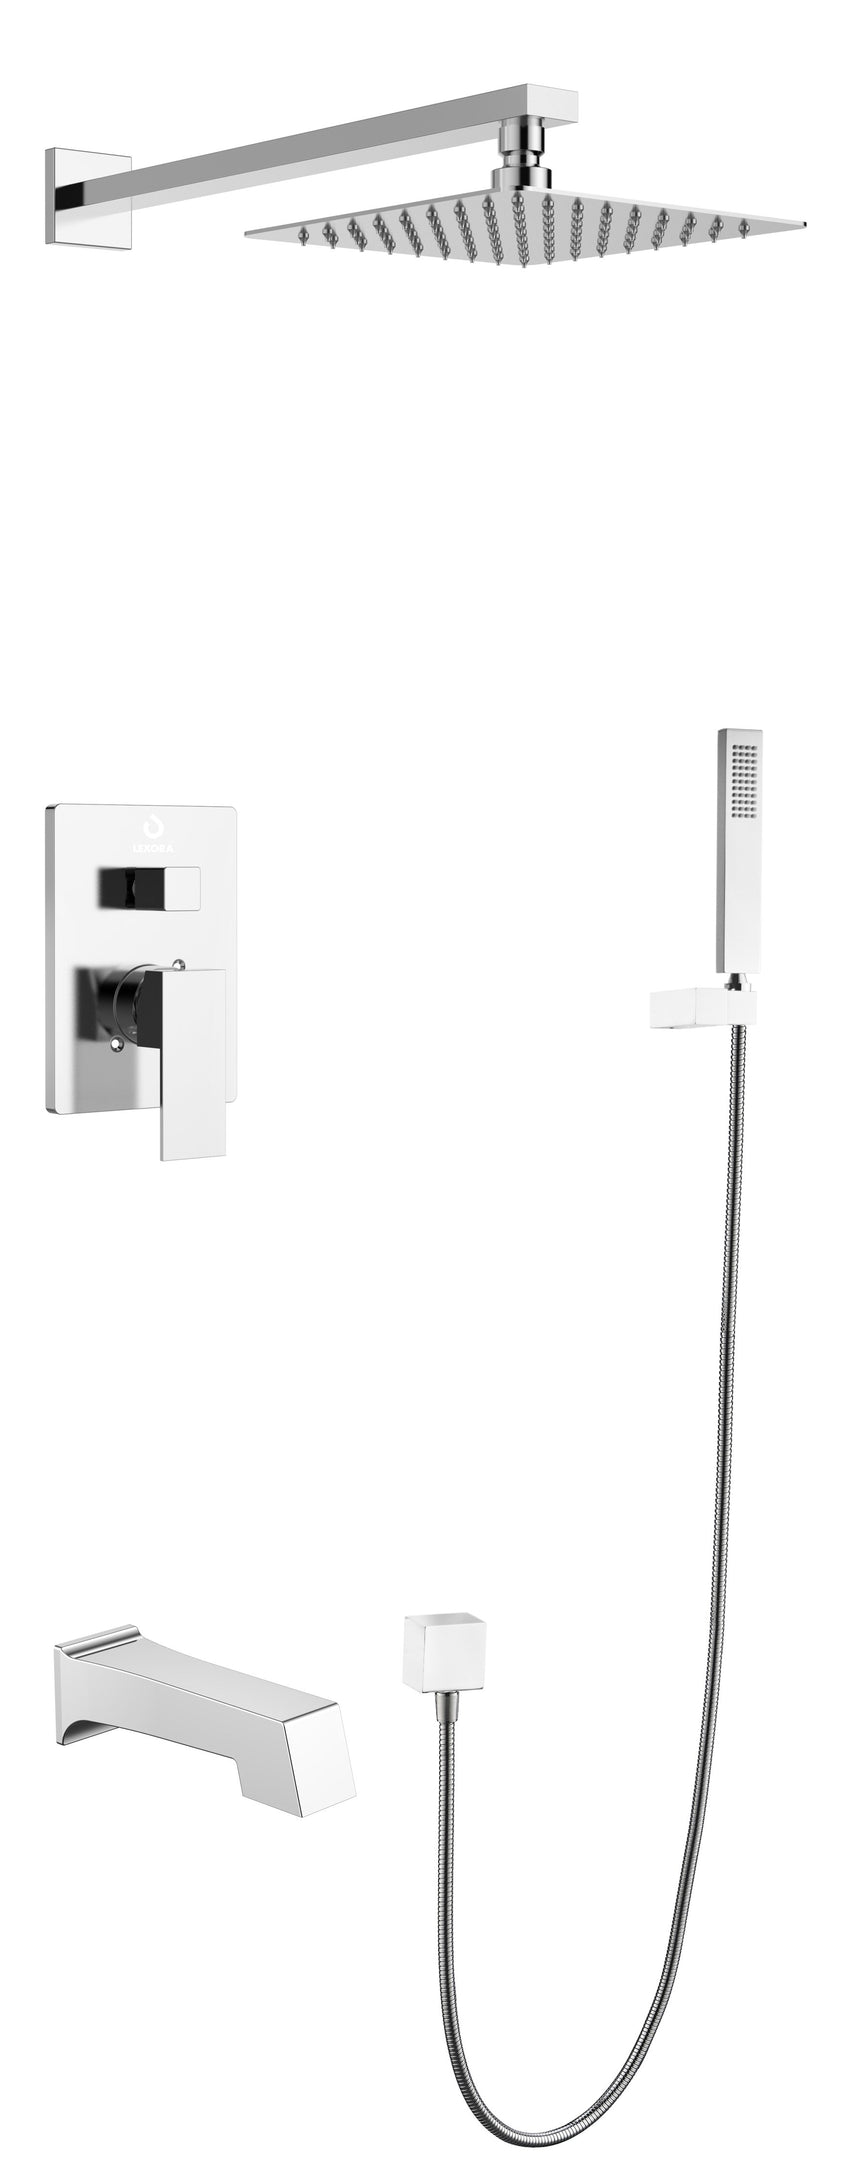 "Bathroom Accessories - Lexora LSS10011CH Monte Celo Set, 8"" Square Rain Shower And Handheld, Chrome"